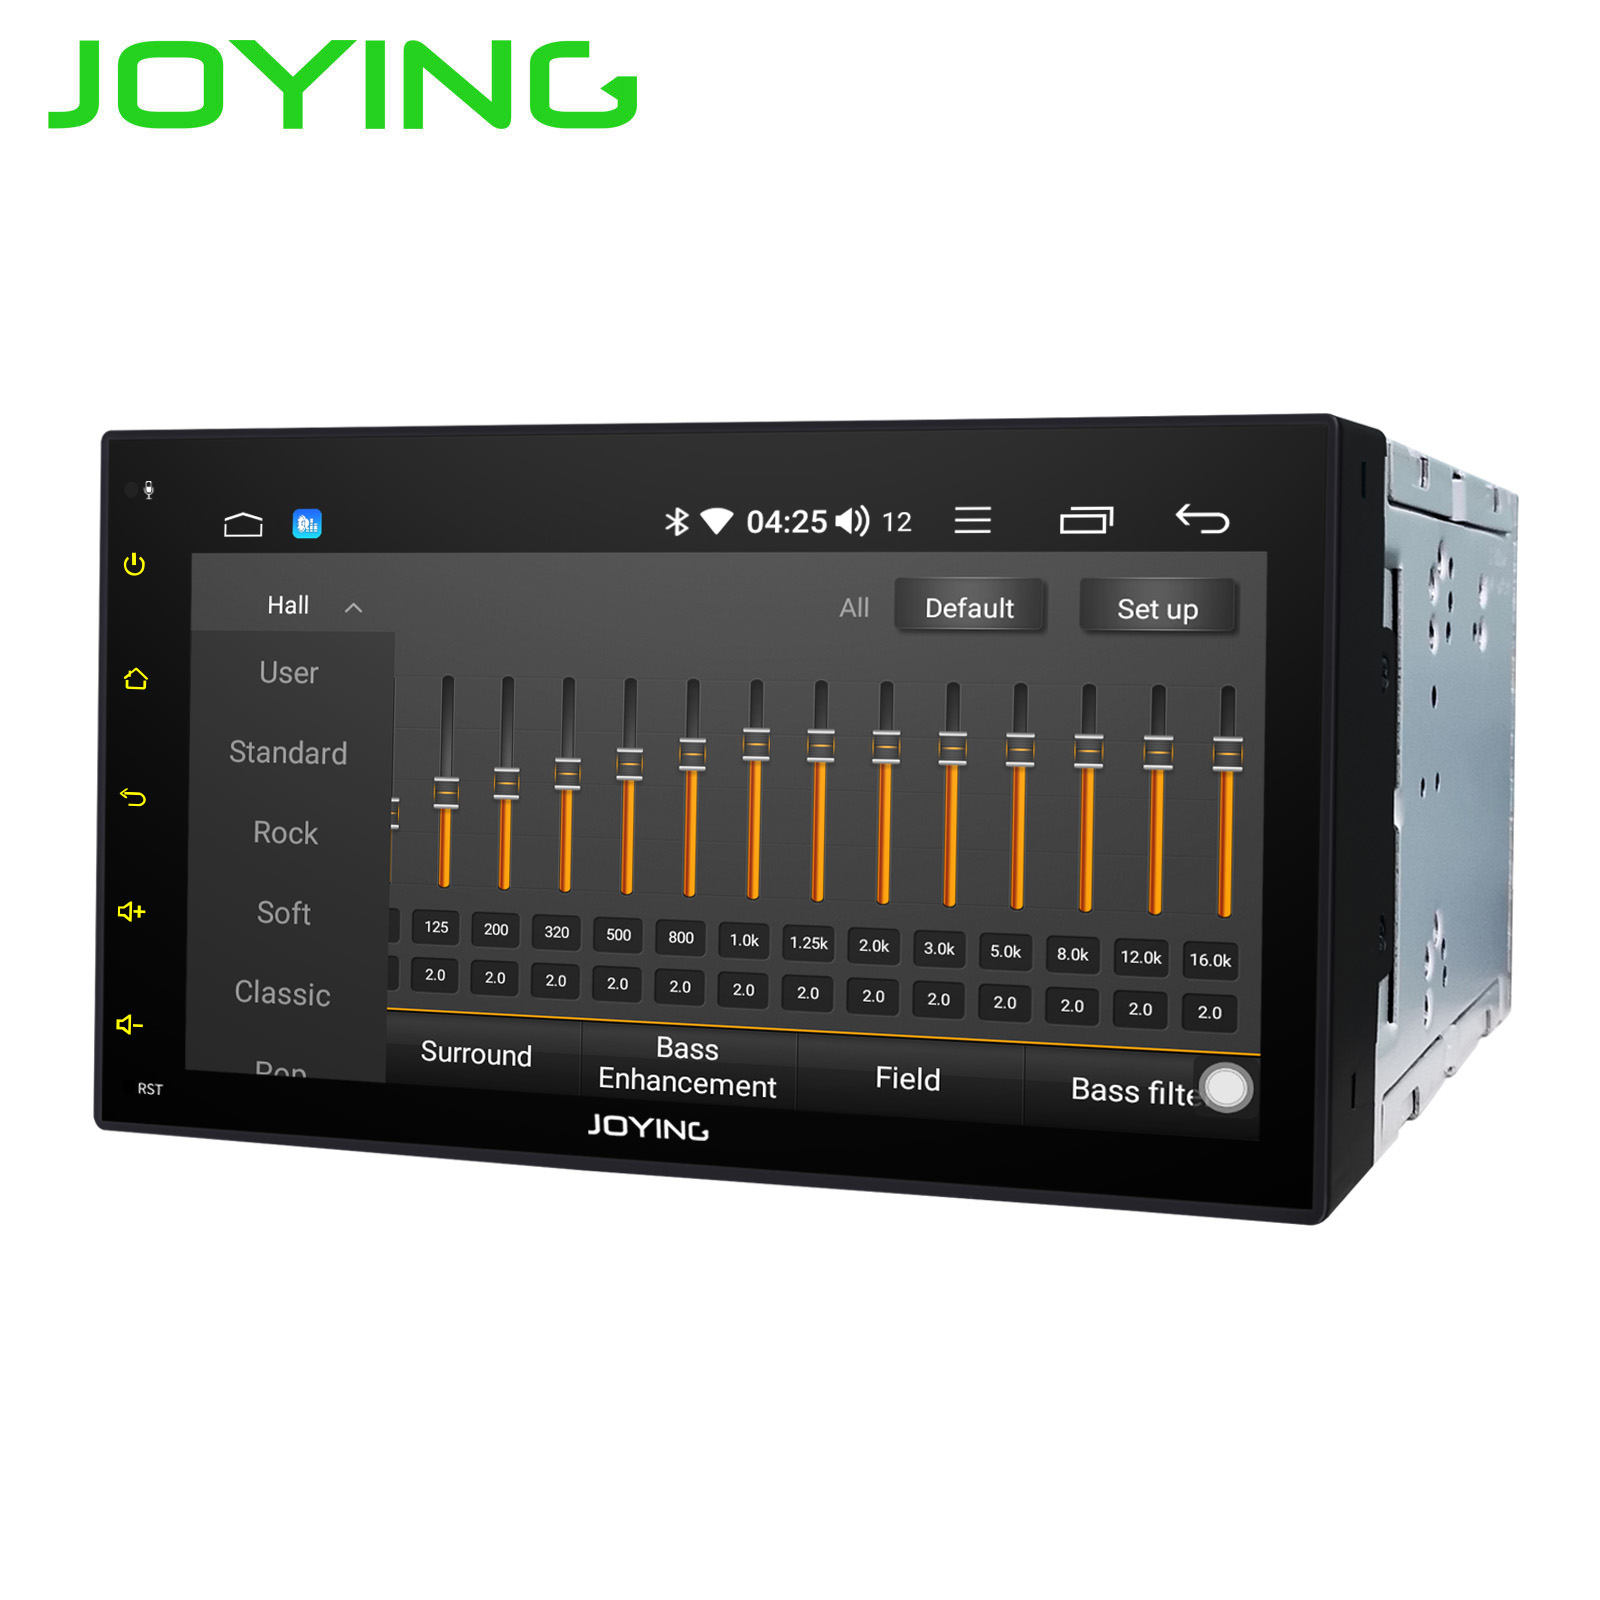 "JOYING double 2 din 6.95"" car radio Android 8.1 Octa Core with DSP GPS Navigation head unit SWC universal BTstereo audio player-in Car Multimedia Player from Automobiles & Motorcycles    2"